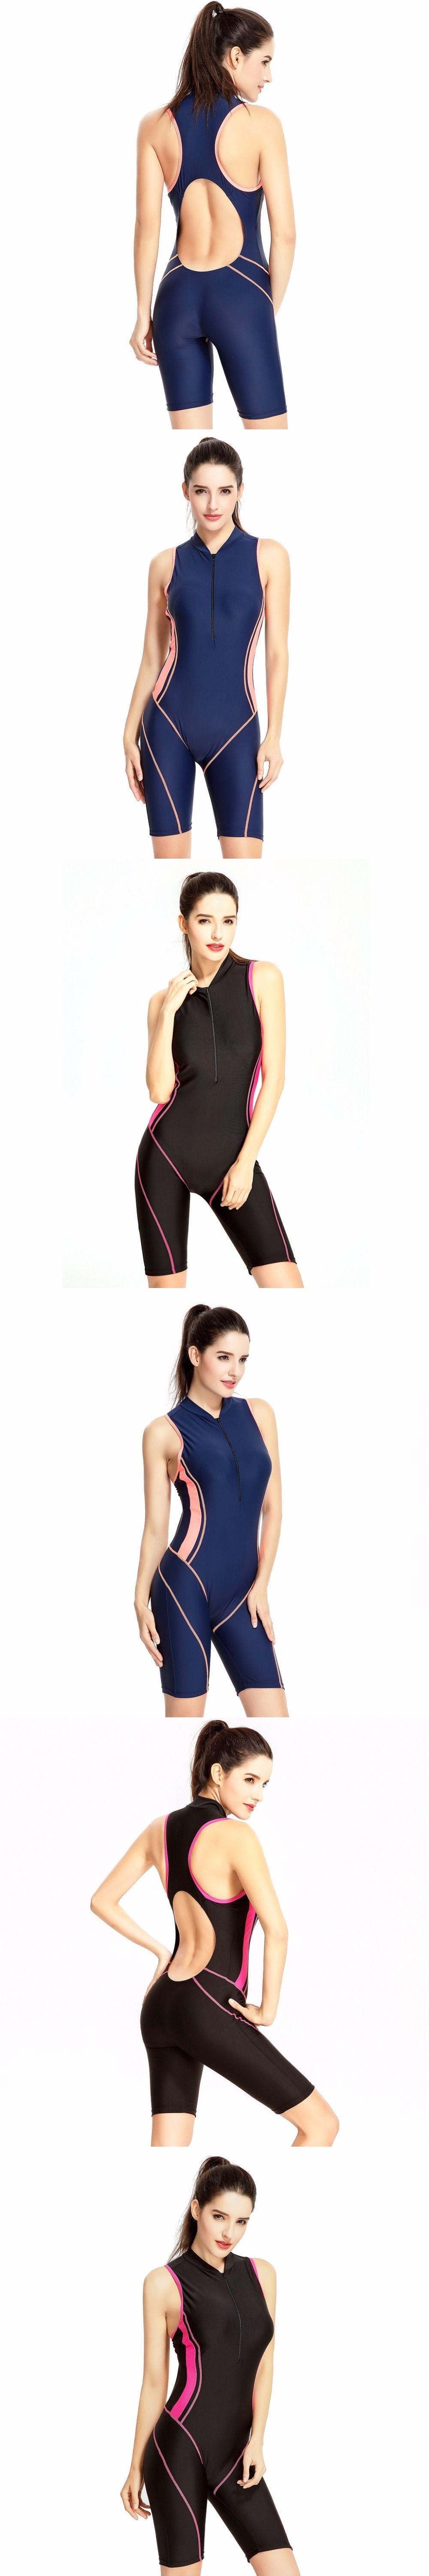 2441ea340 Professional Women s Full Body Swimsuit Zipper Front Kneeskin Tech Suit  Racing Competition Swimsuit Sport Swimming Suit